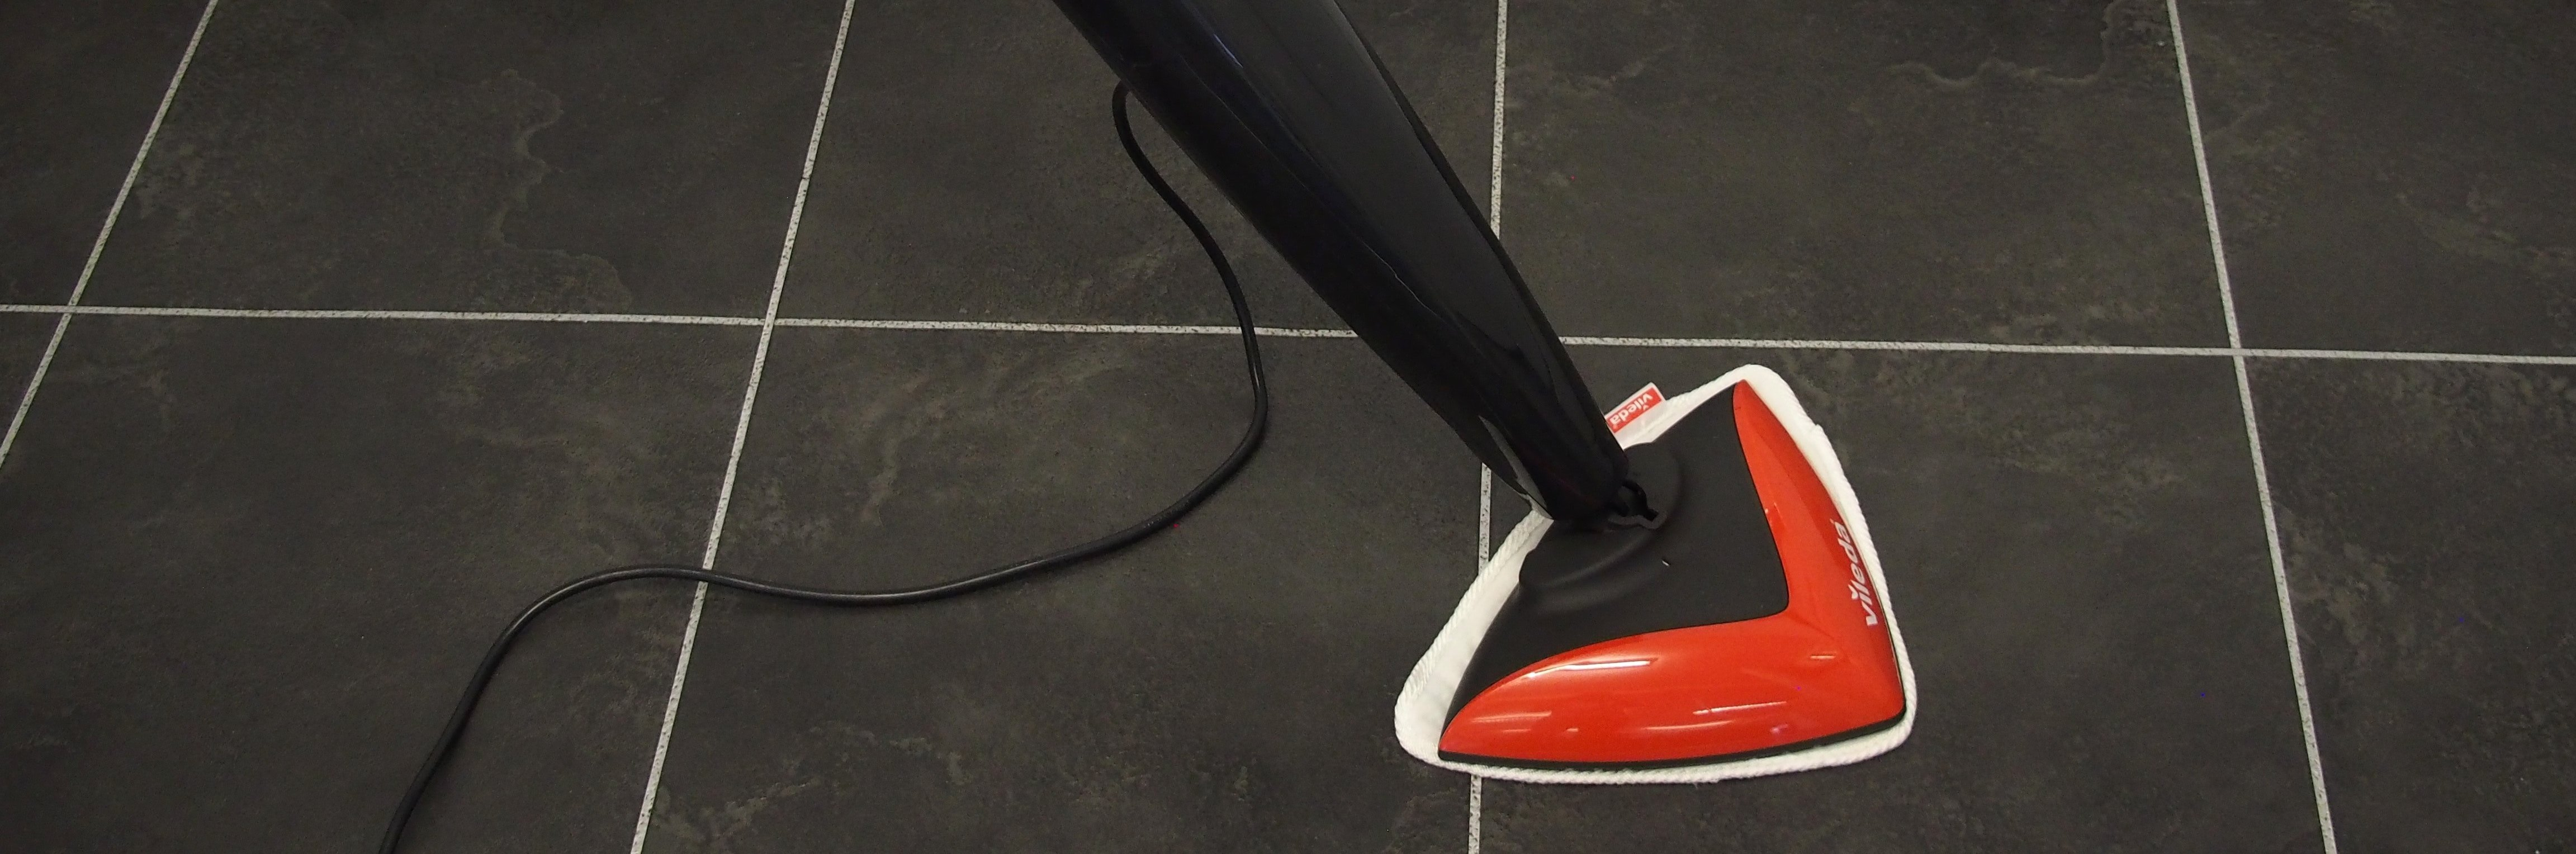 How to Clean Tile Floors – Handy Tips and Tricks for Cleaner Flooring